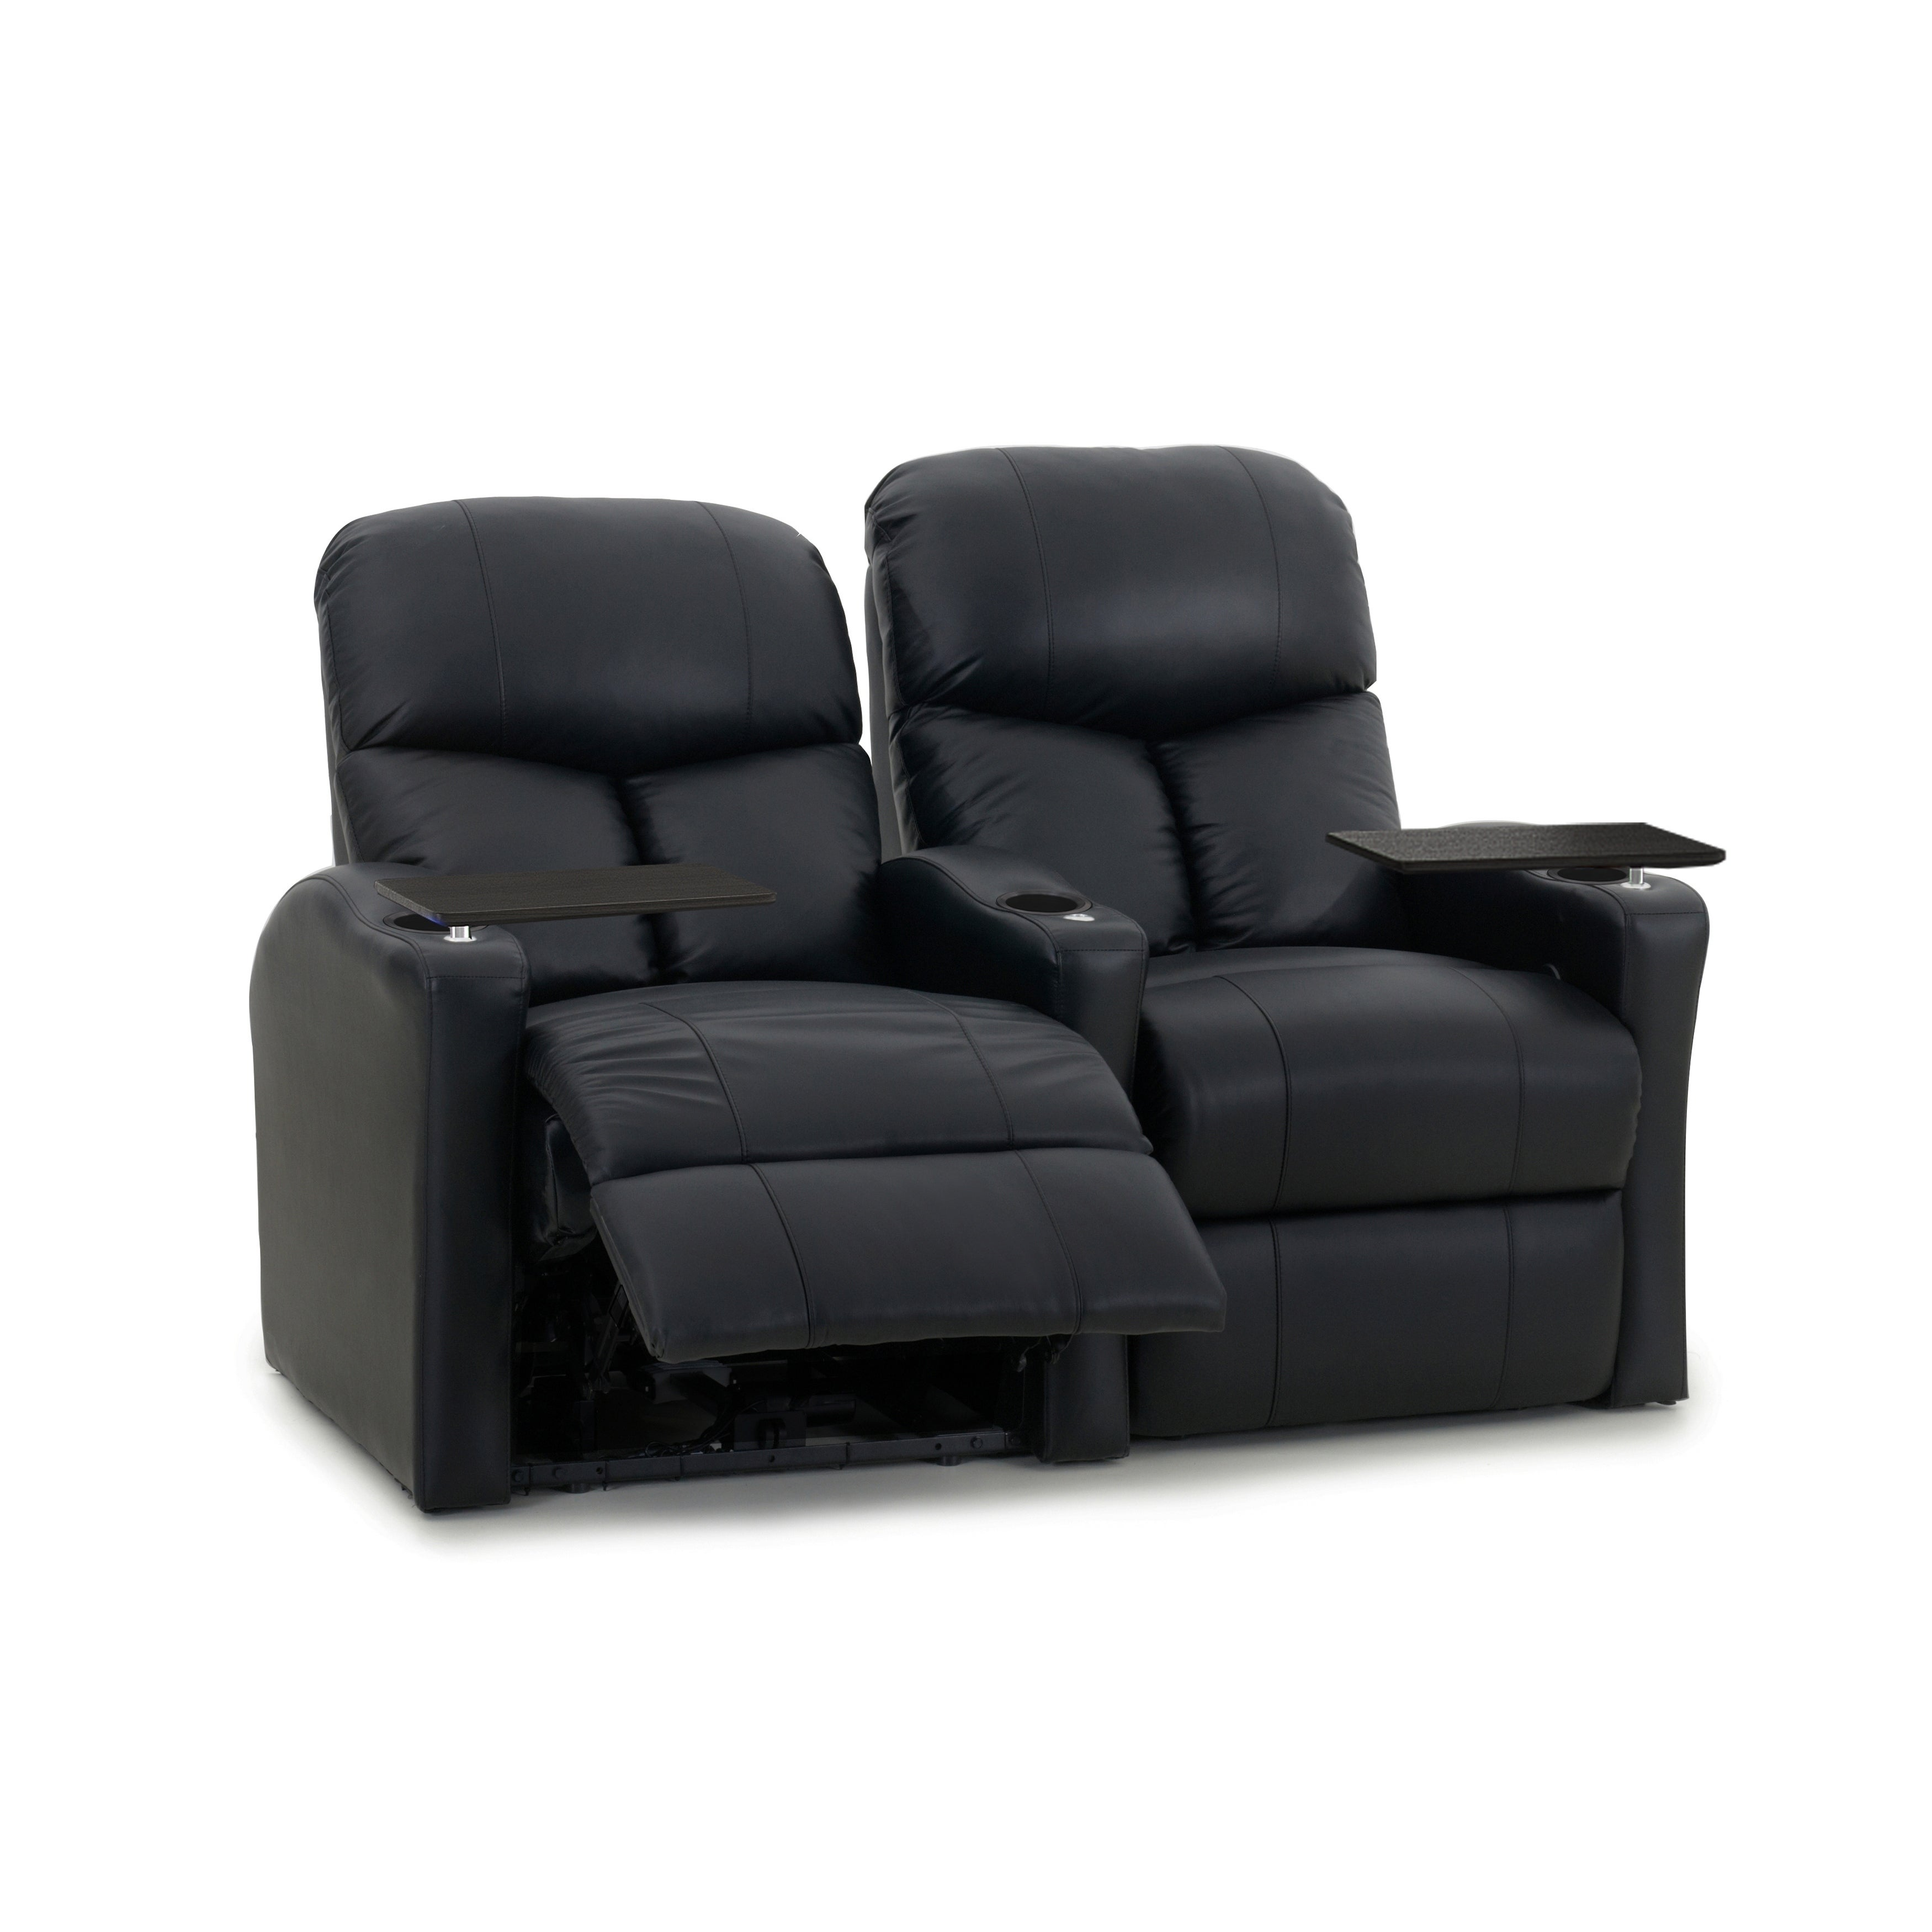 Octane Bolt XS400 Manual Leather Home Theater Seating Set...